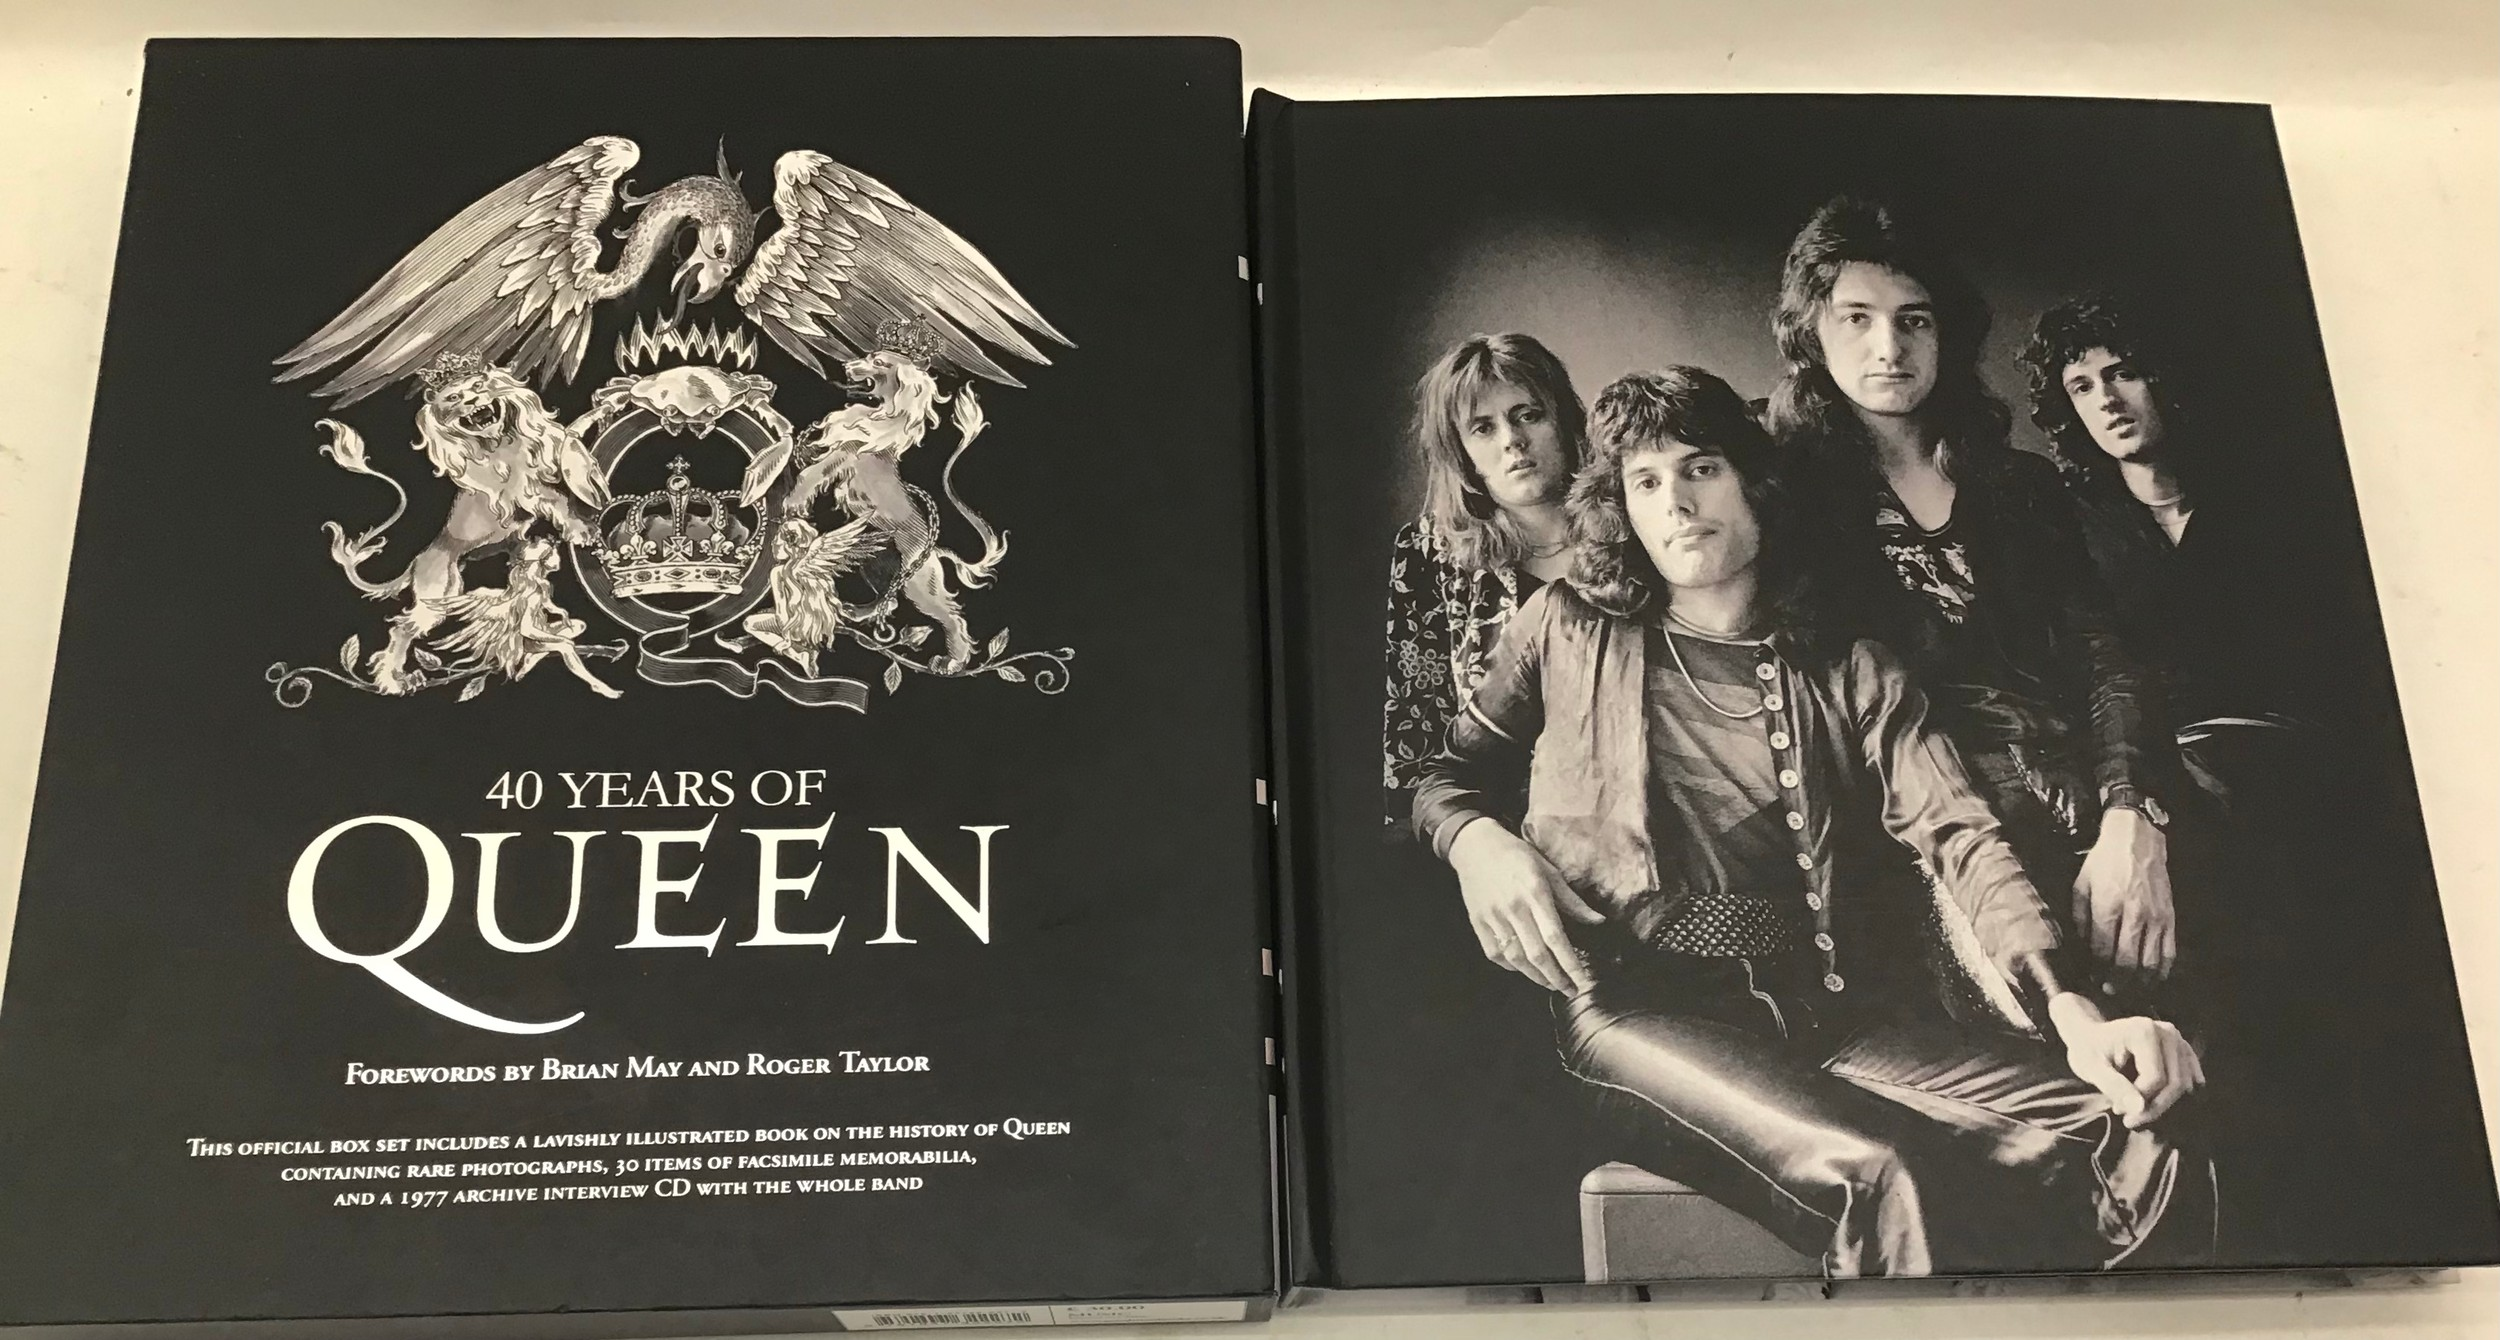 40 YEARS OF QUEEN. The book showcases the band, its members, recordings and concerts through - Image 3 of 6